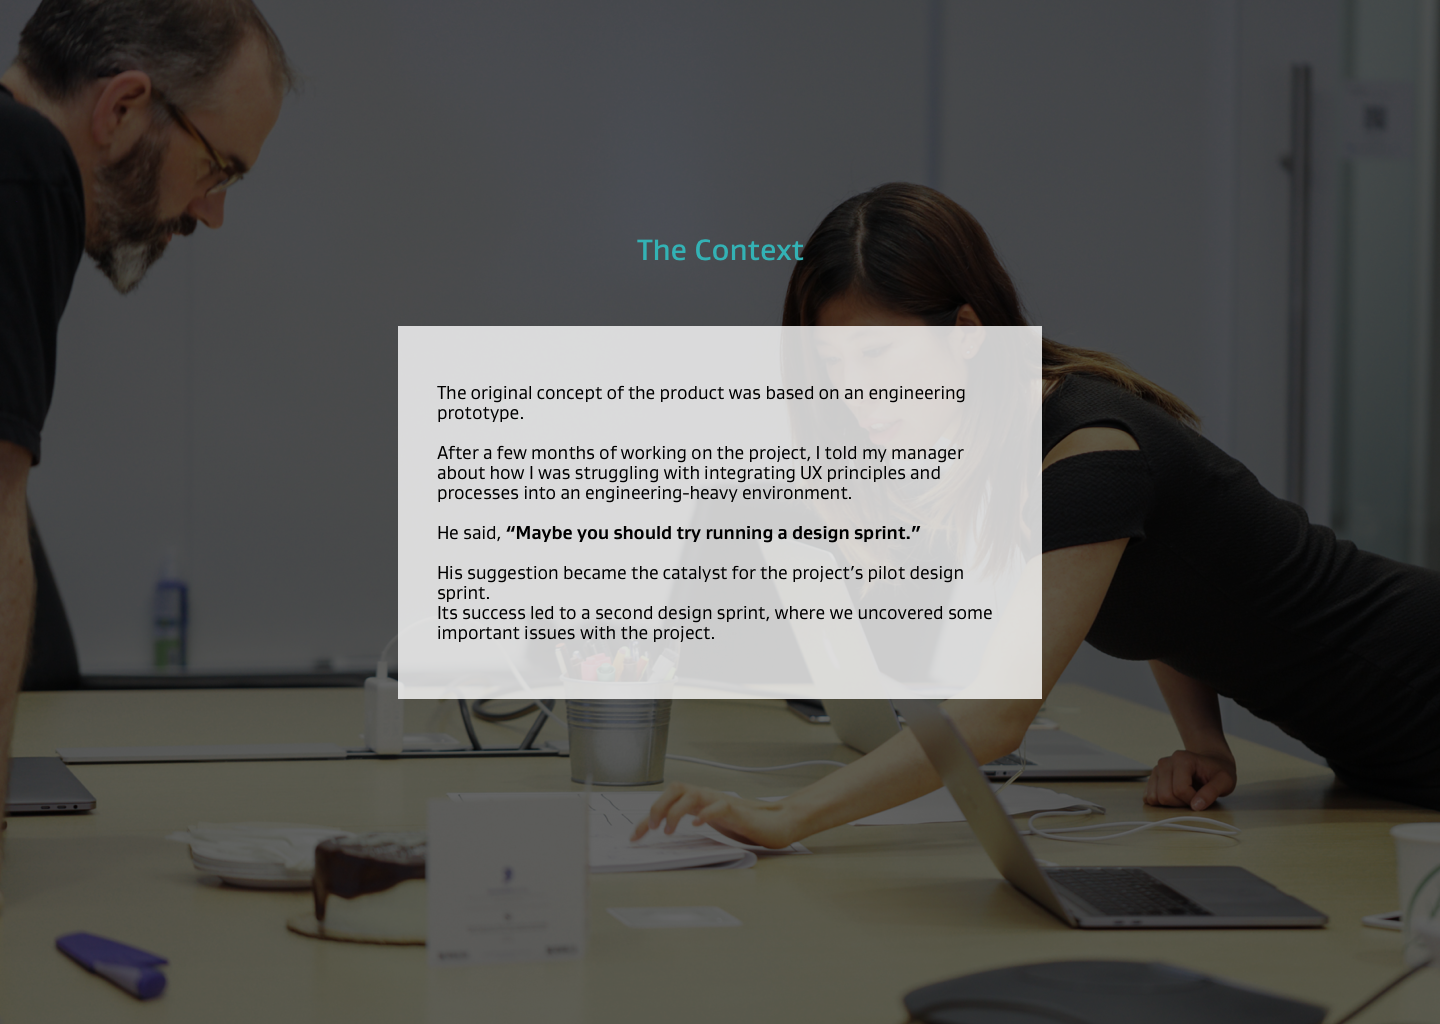 2. Project context